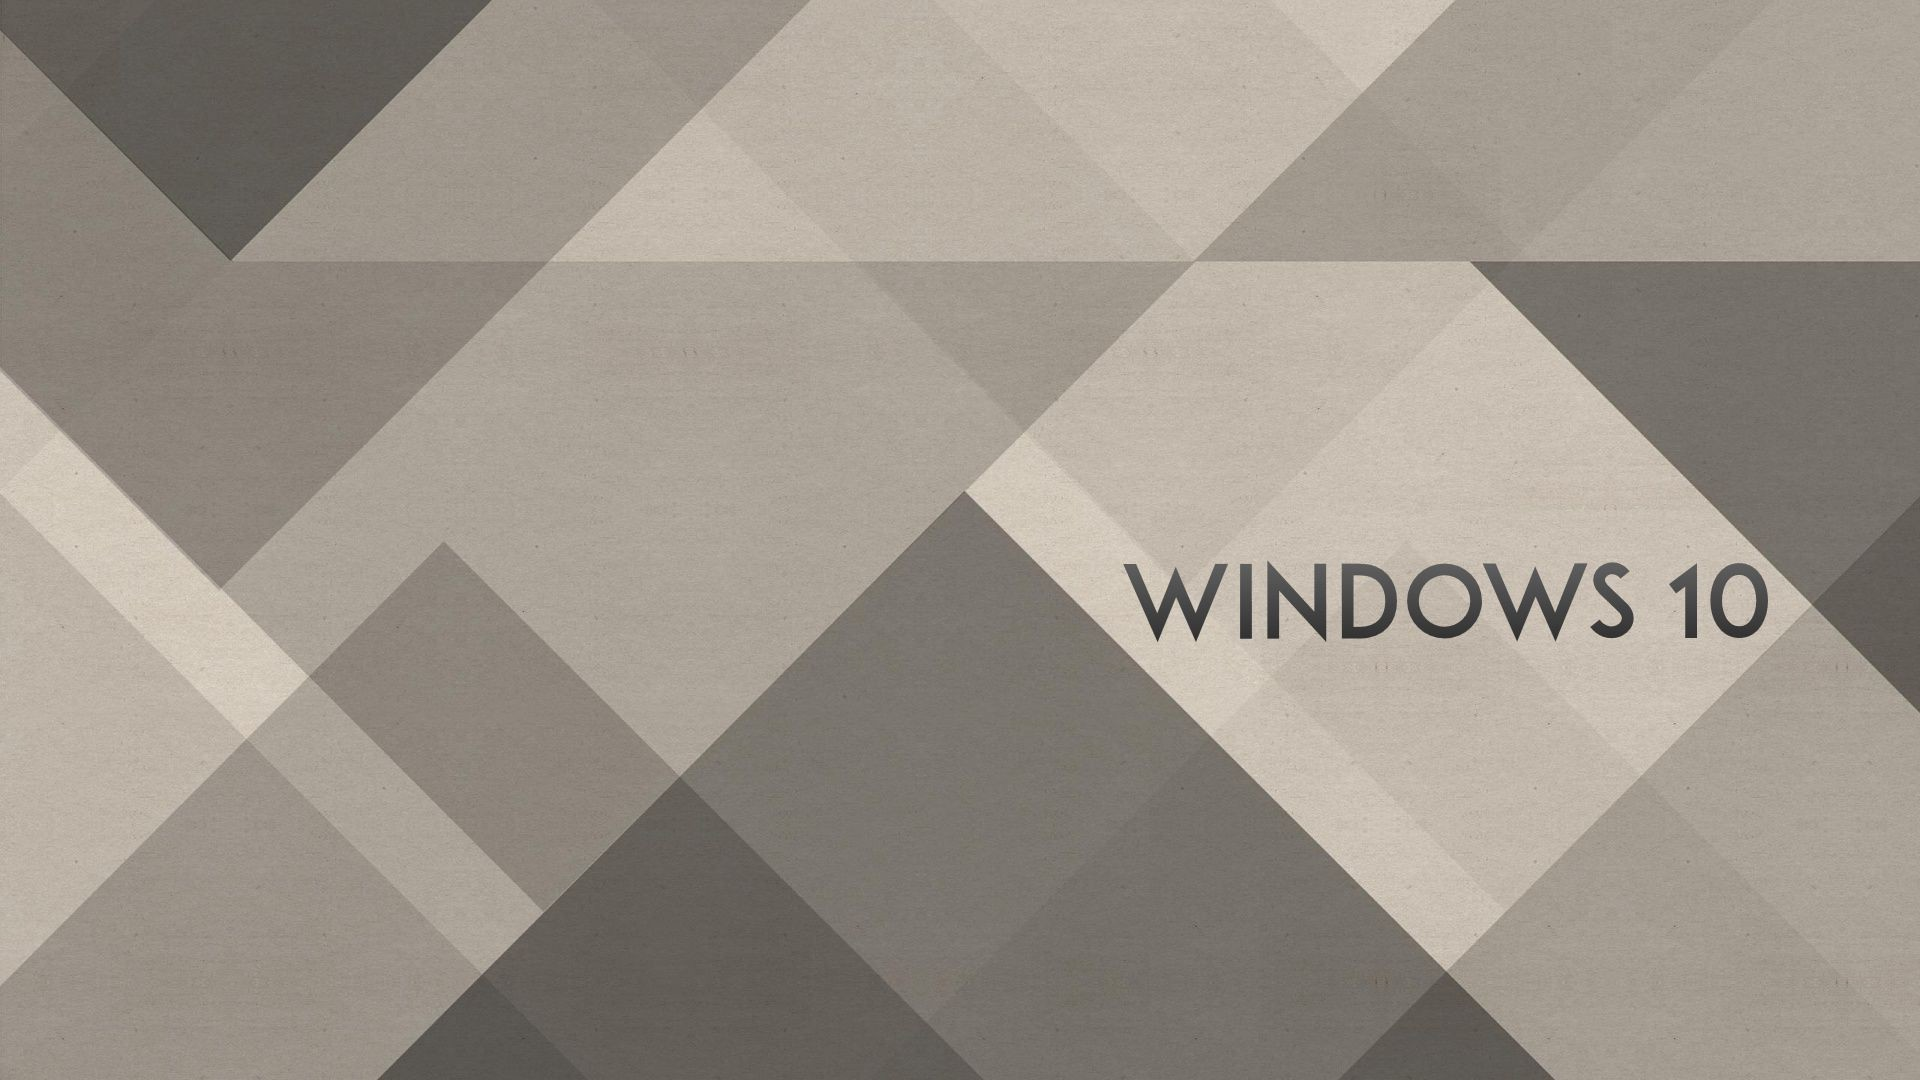 1920x1080 Windows 10 Wallpaper 1080p Full HD Grey Abstract